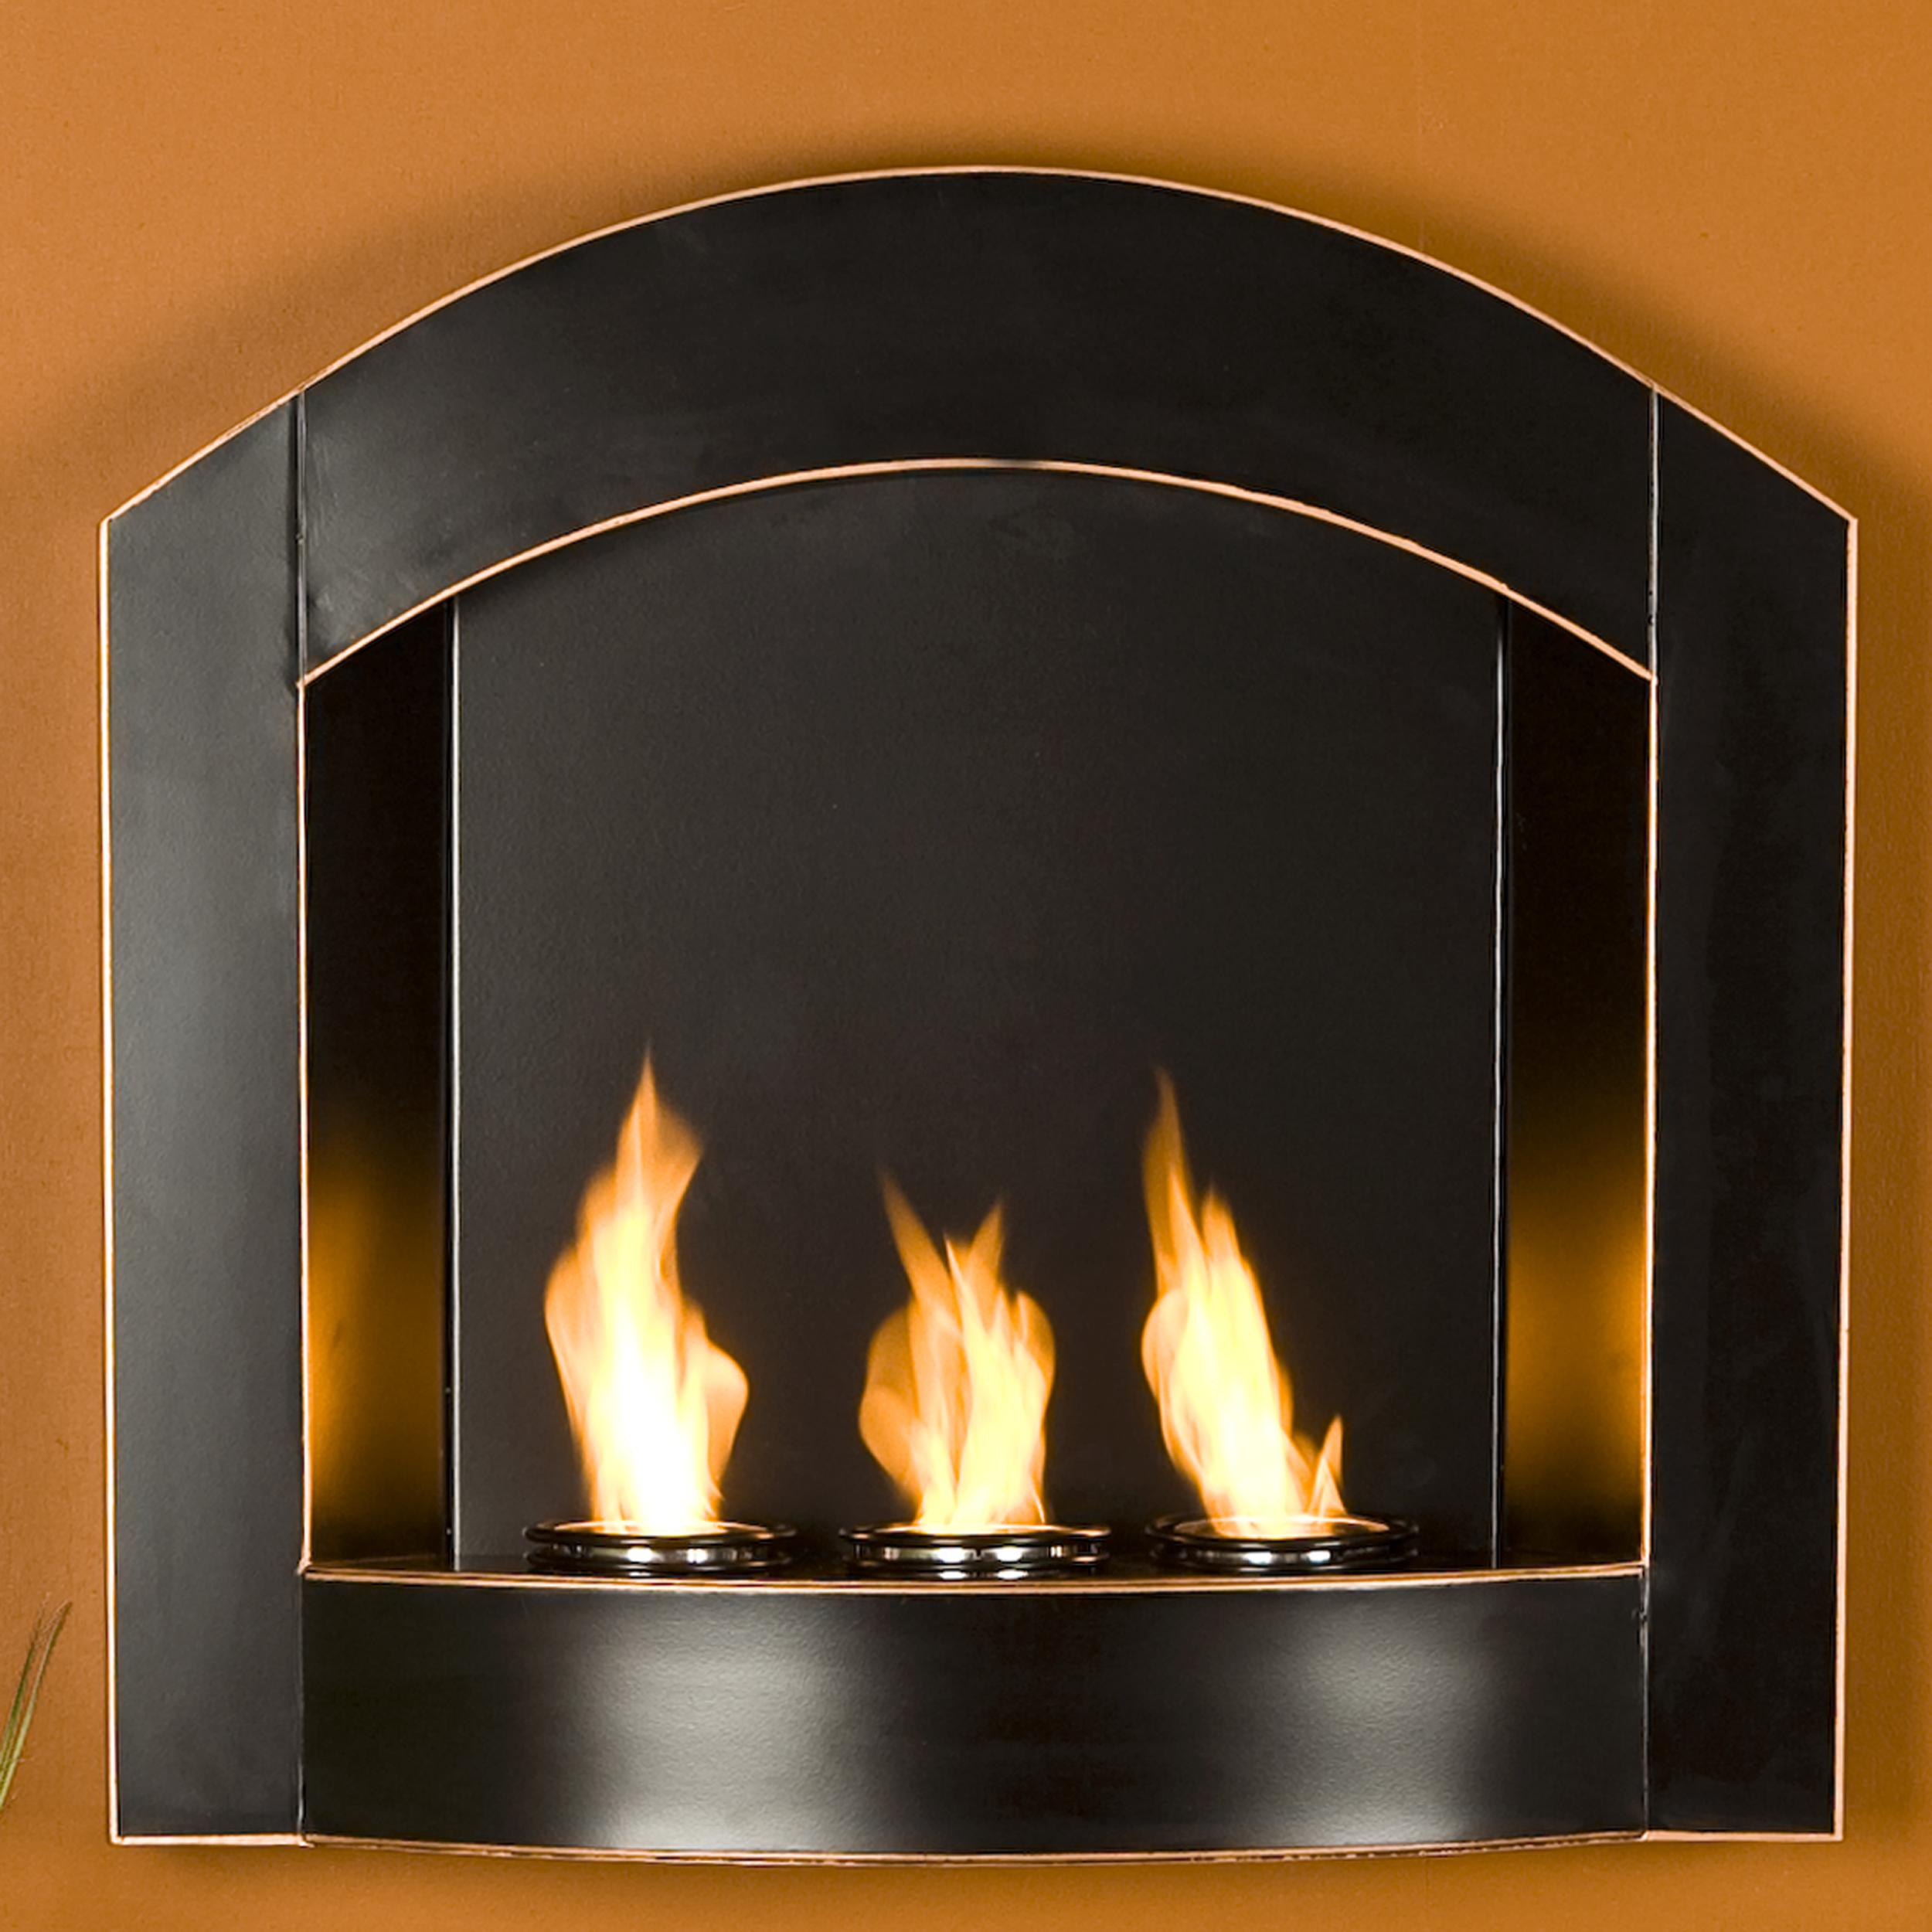 walmart fireplace electric space wide with digital ip com heater flame mantle decor